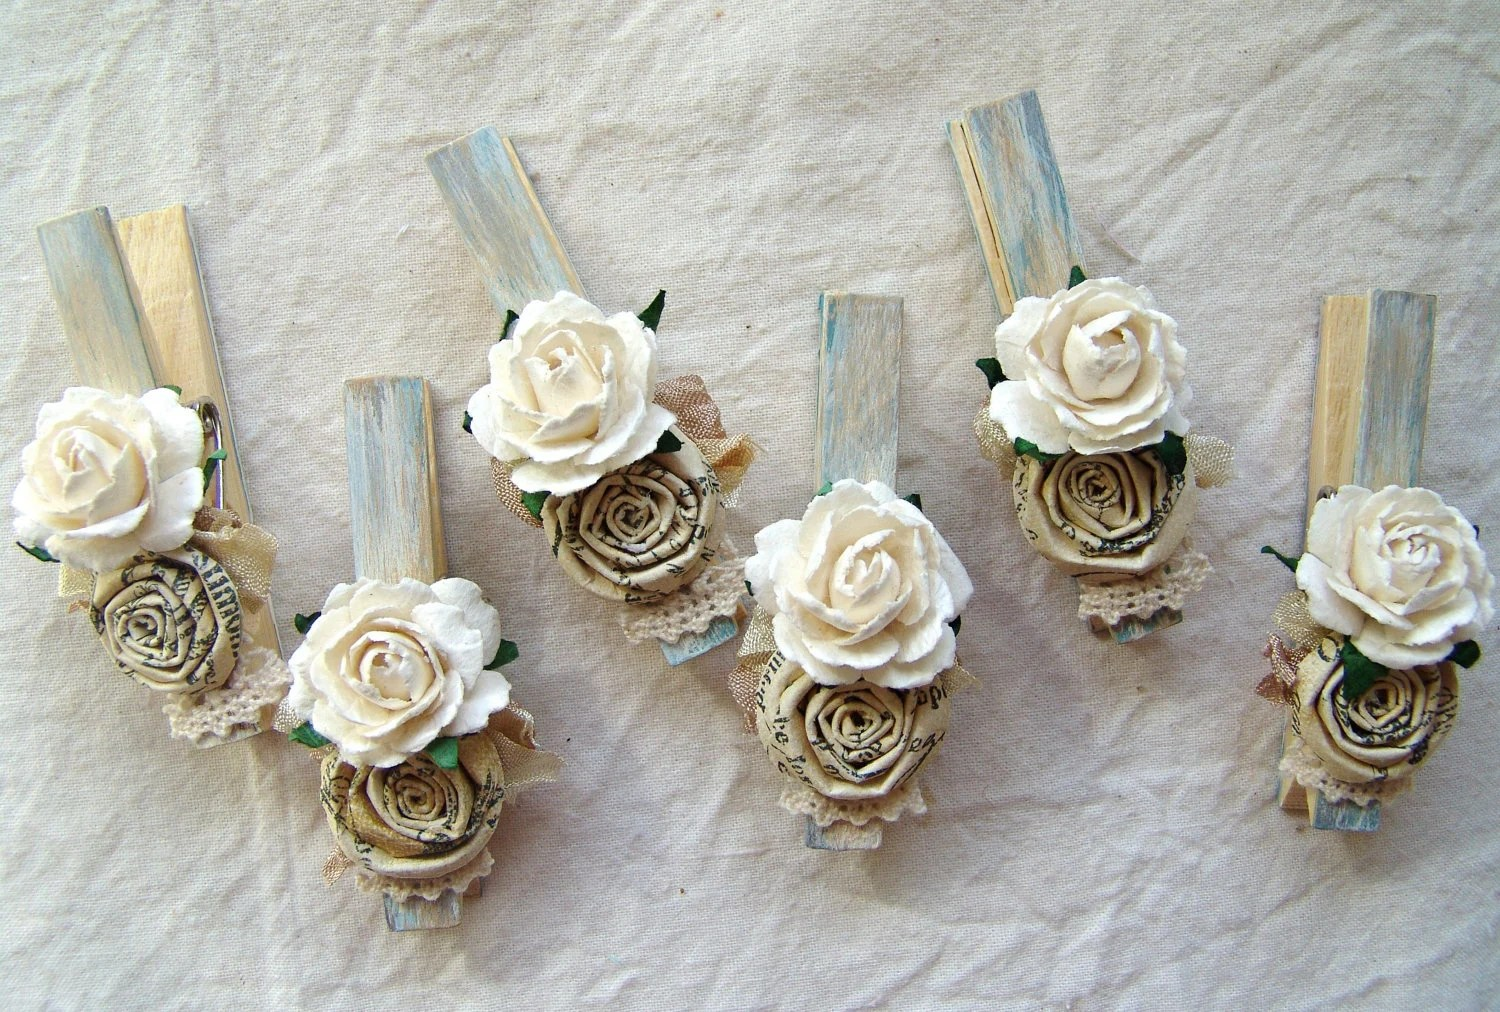 French Country Shabby Chic Cottage Blue Decorative Clothespins - Shabby Chic Tischdeko